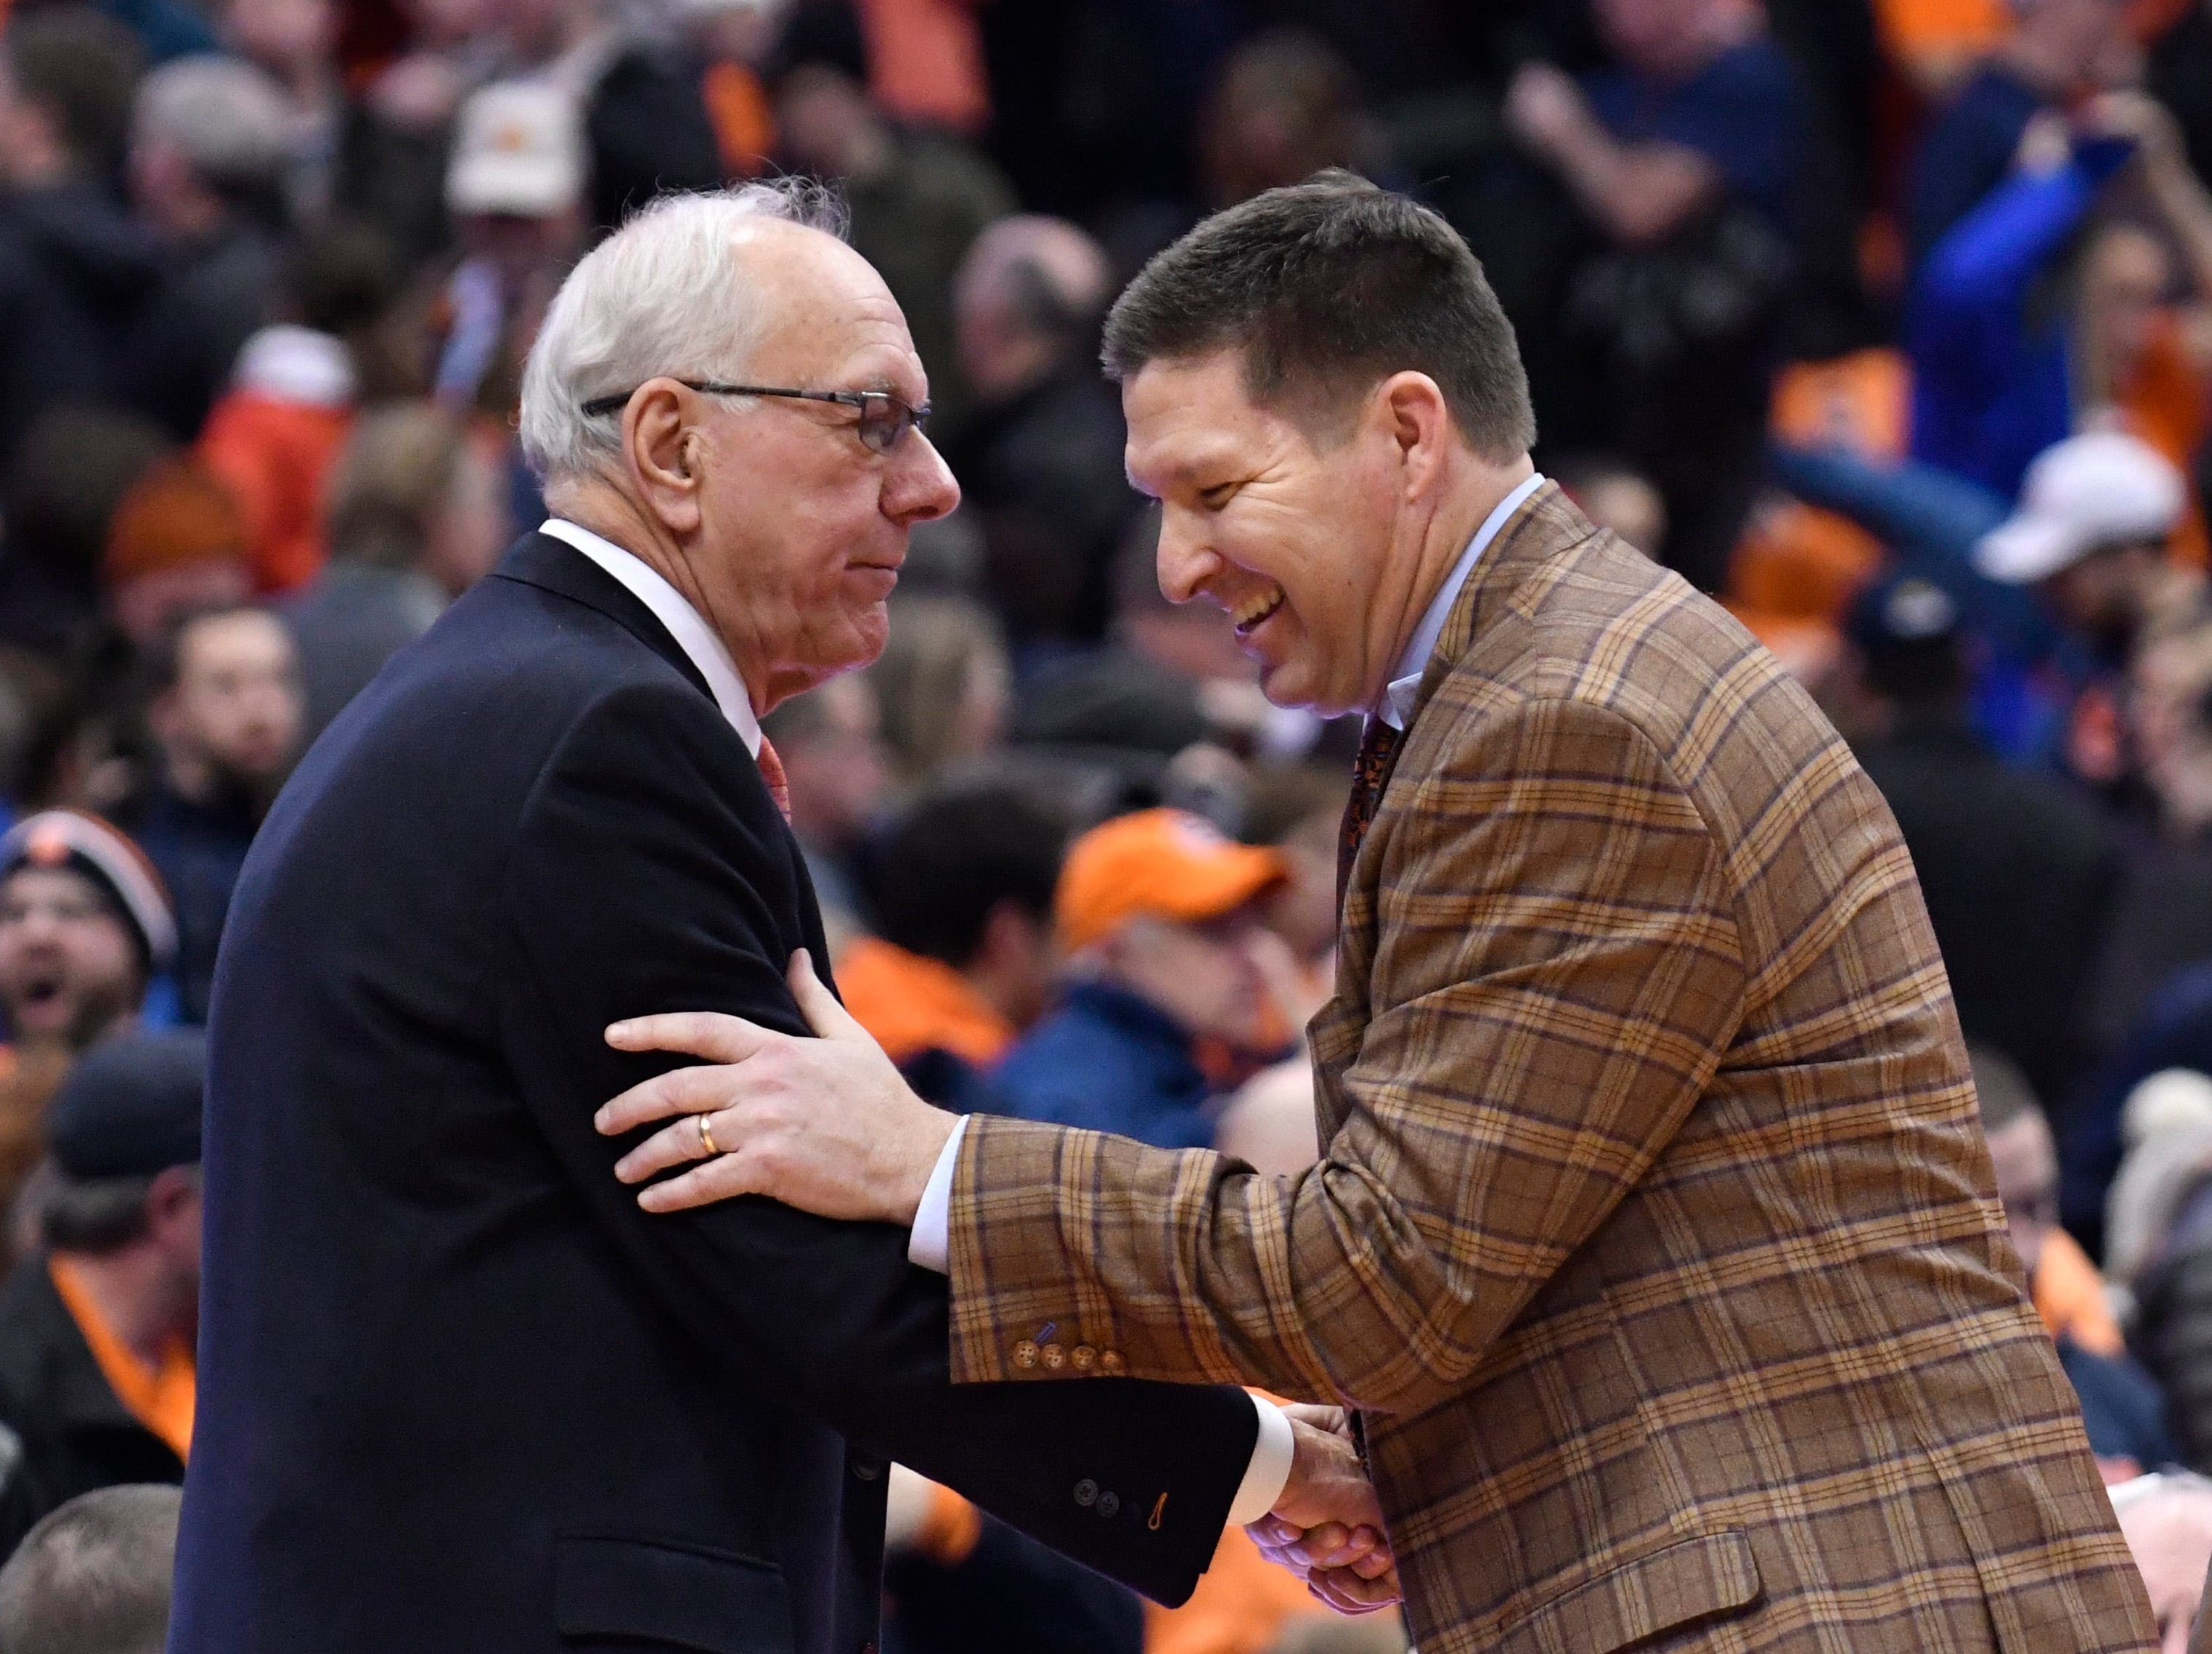 Jan 9, 2019; Syracuse, NY, USA; Syracuse Orange head coach Jim Boeheim is greeted by Clemson Tigers head coach Brad Brownell (right) after a game at the Carrier Dome.